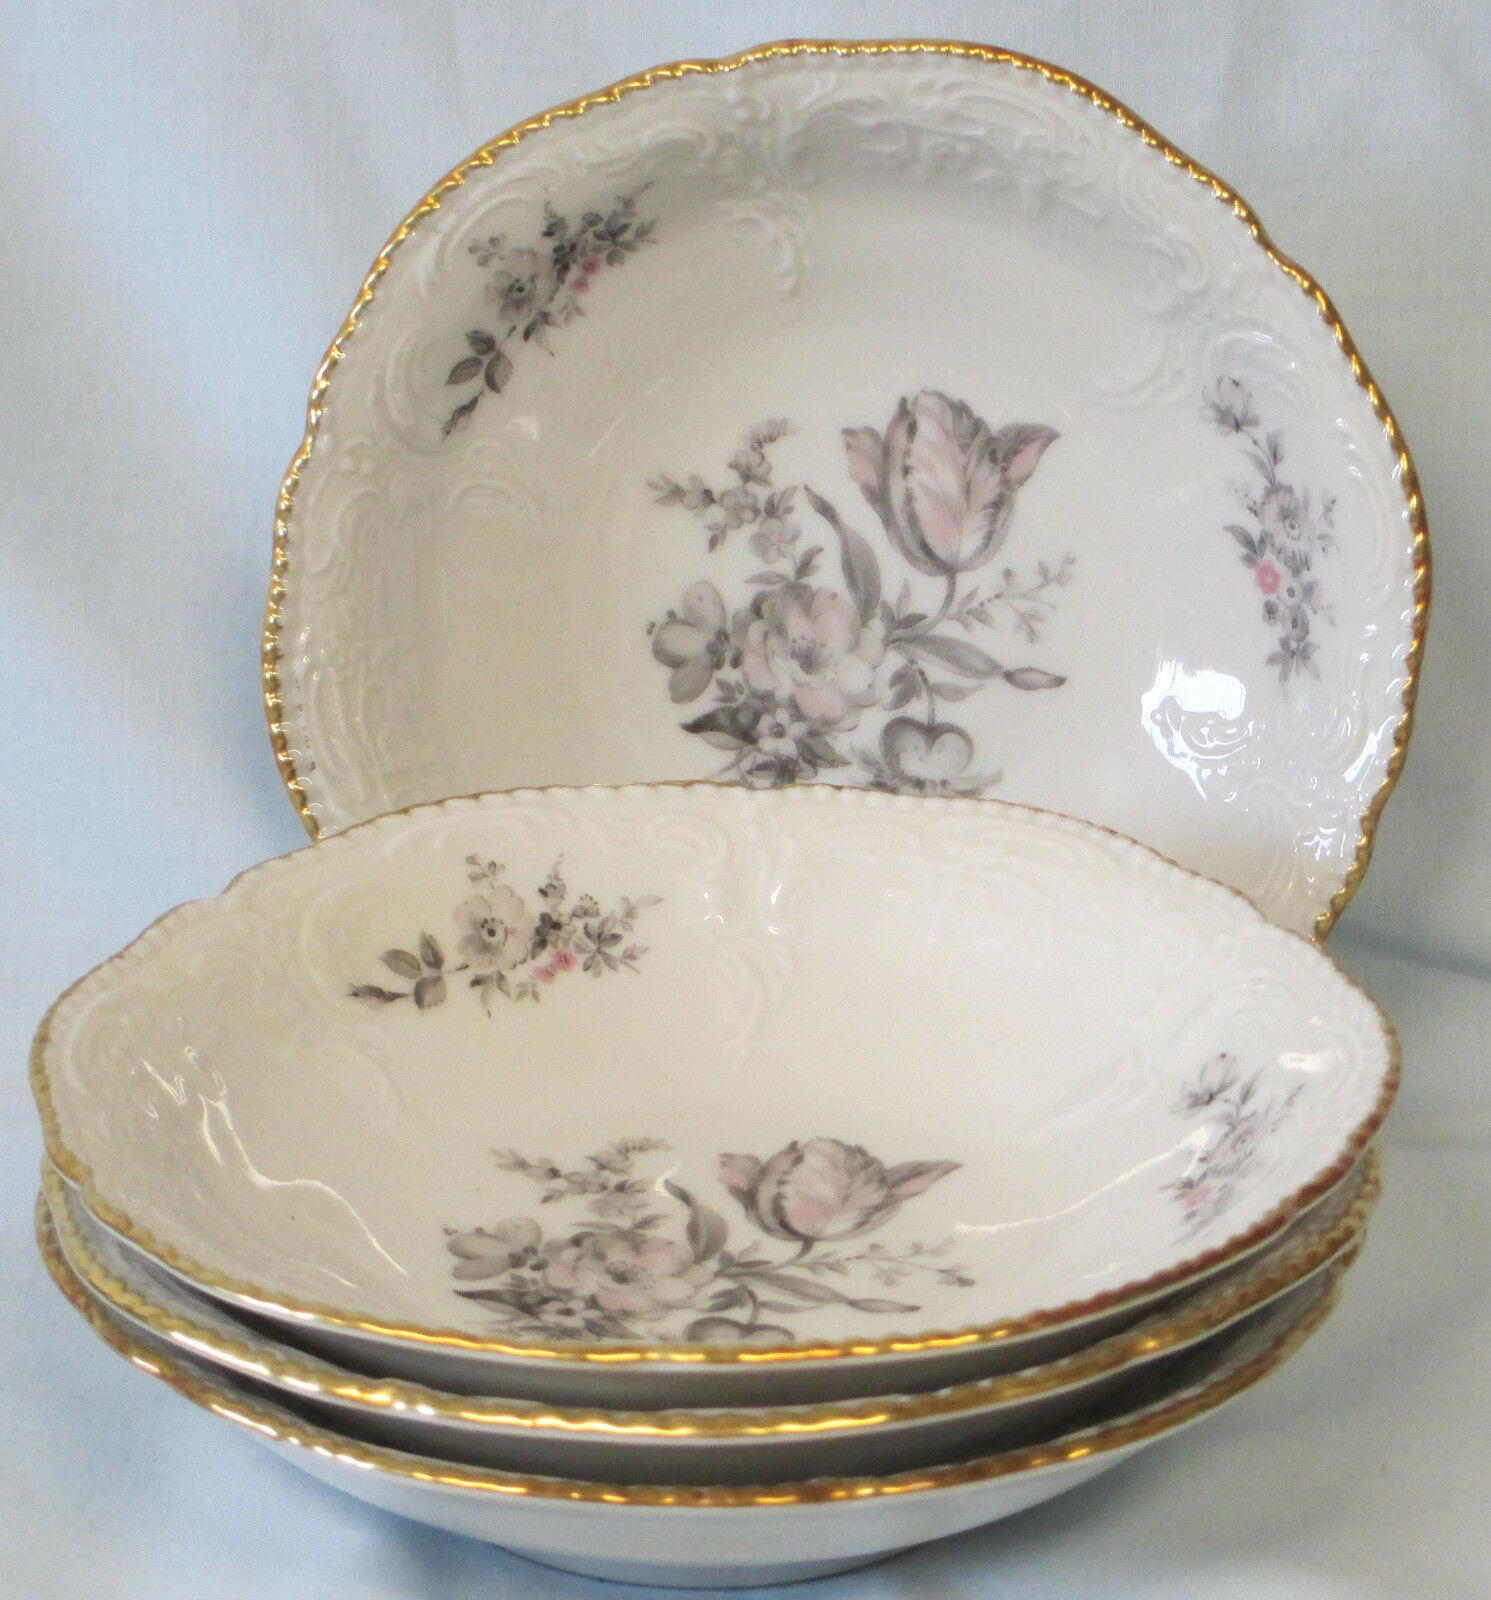 Primary image for Rosenthal Sanssouci Grey Rose Fruit or Dessert Bowl set of 4